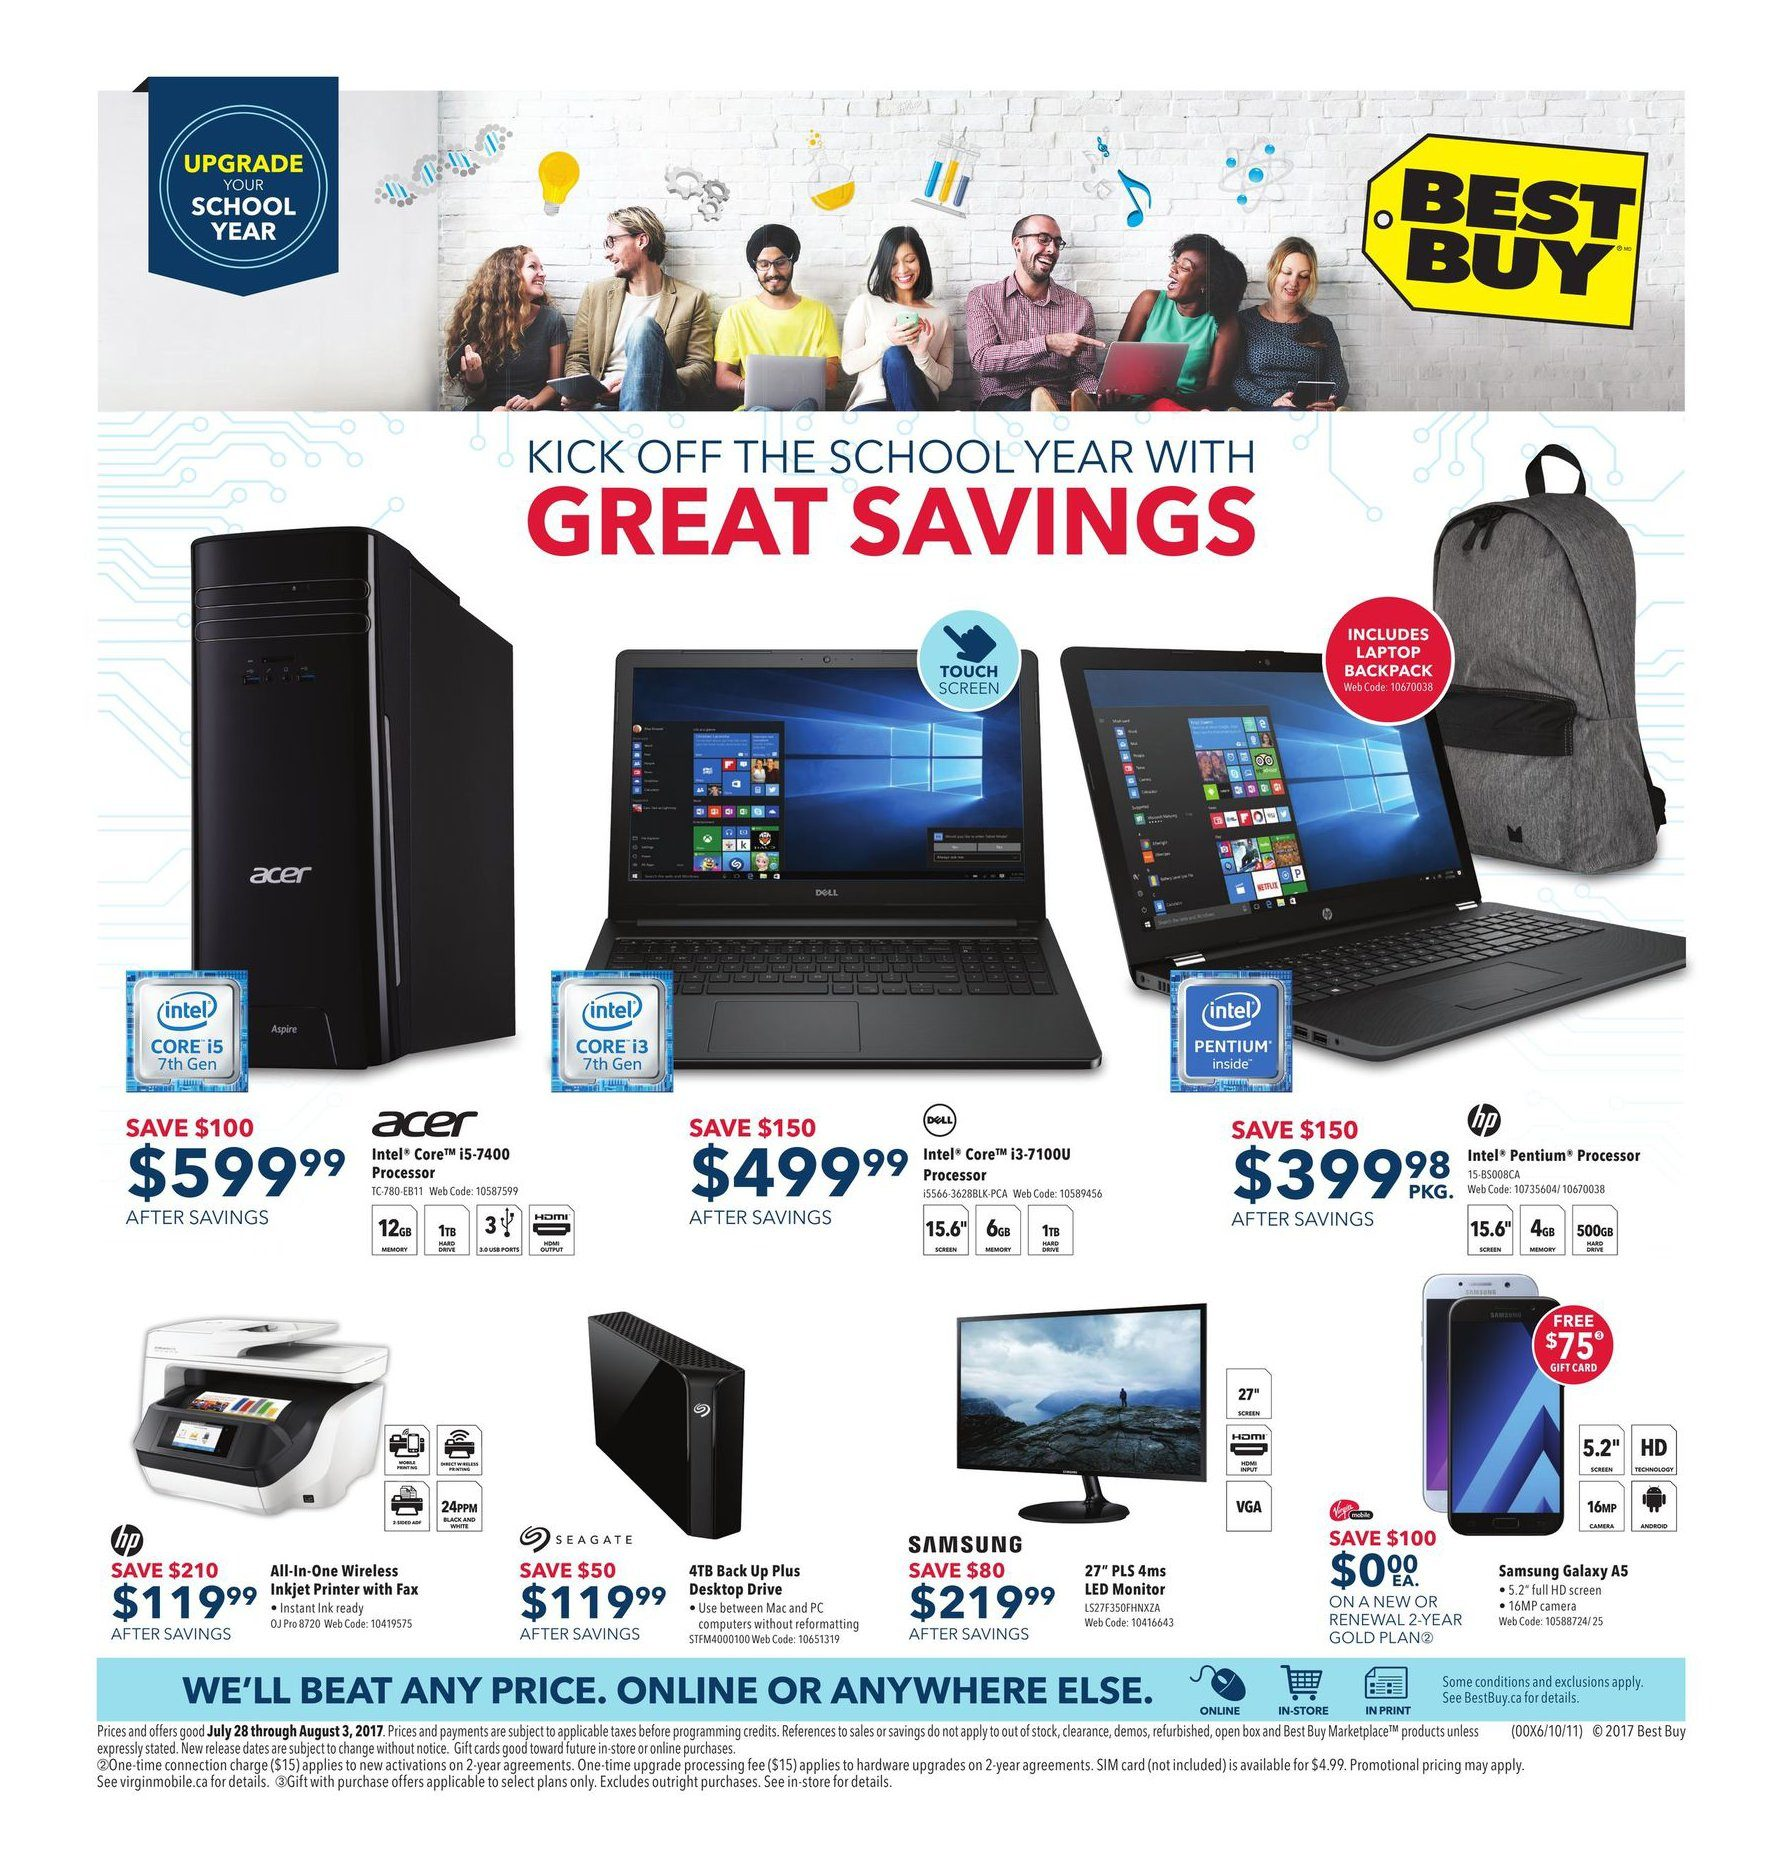 Best buy weekly flyer weekly kick off the school year with great best buy weekly flyer weekly kick off the school year with great savings jul 28 aug 3 redflagdeals fandeluxe Image collections